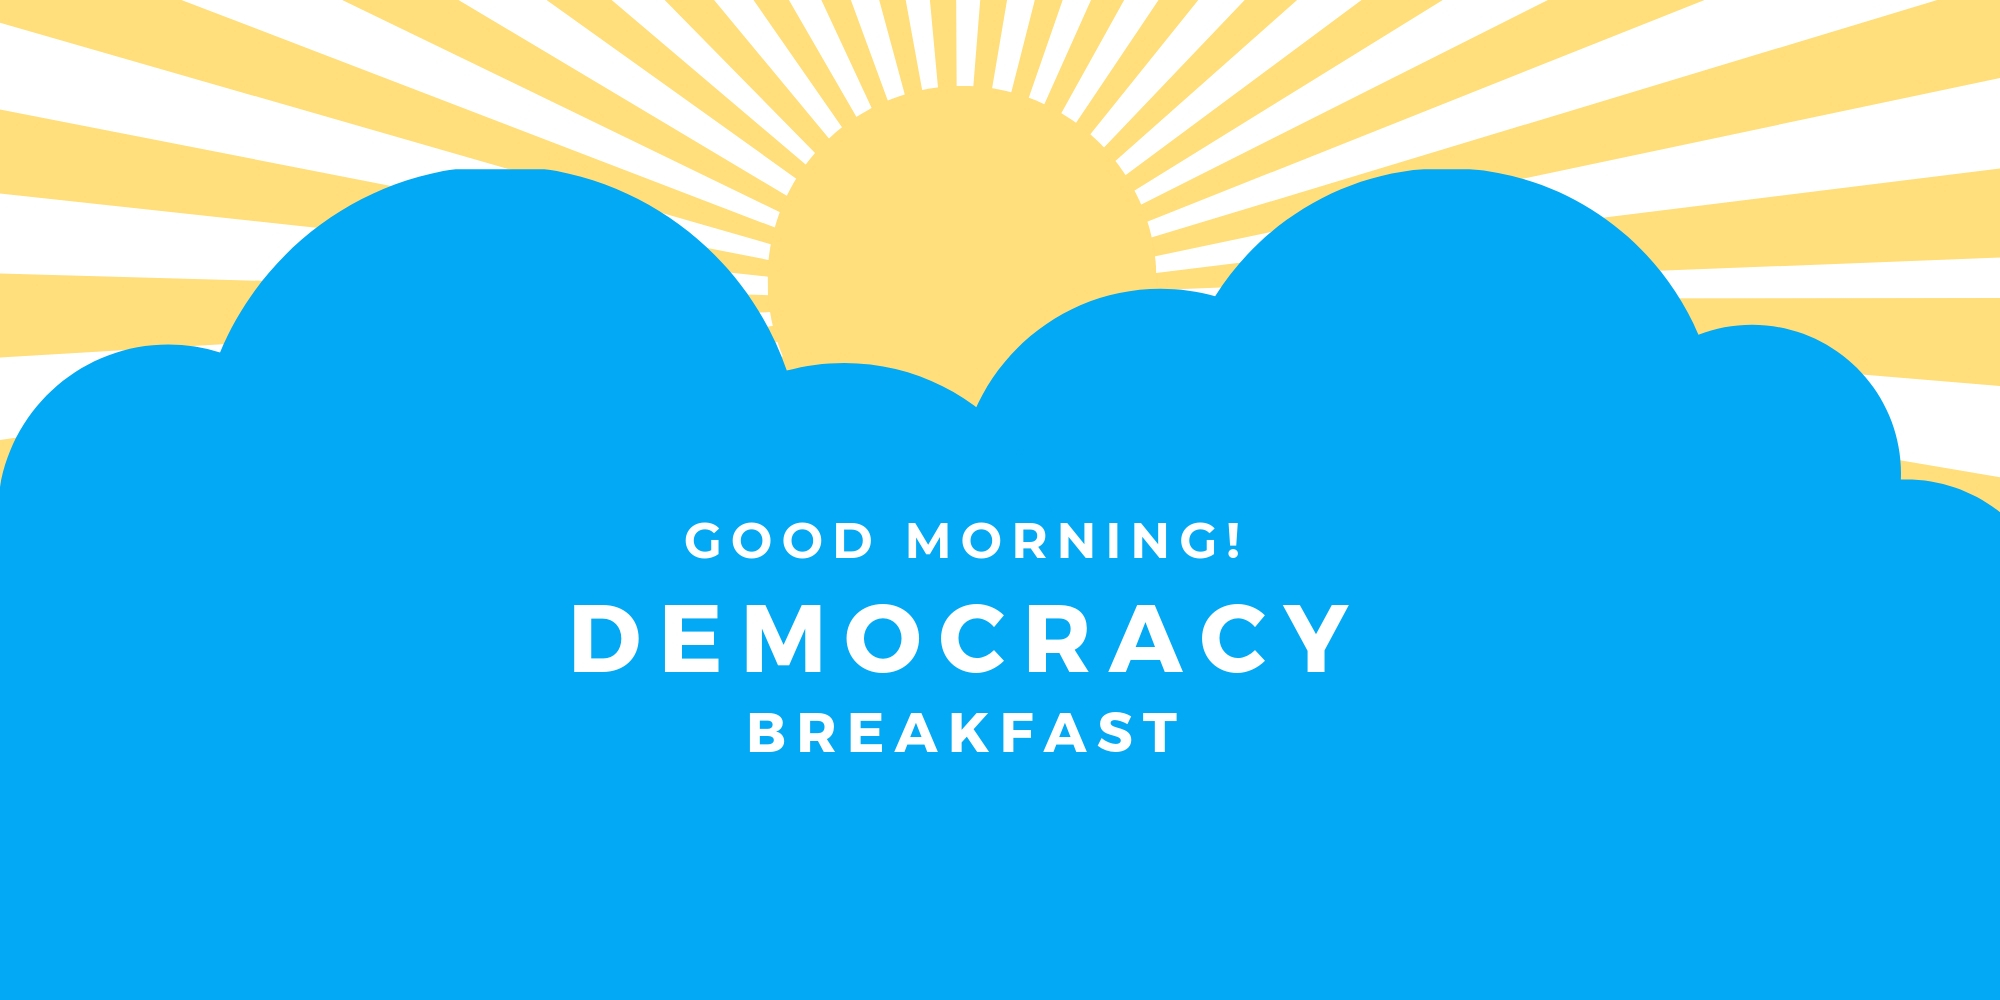 Join FairVote and Stand Up Republic for a breakfast interview with author and democracy scholar Larry Diamond of Stanford University